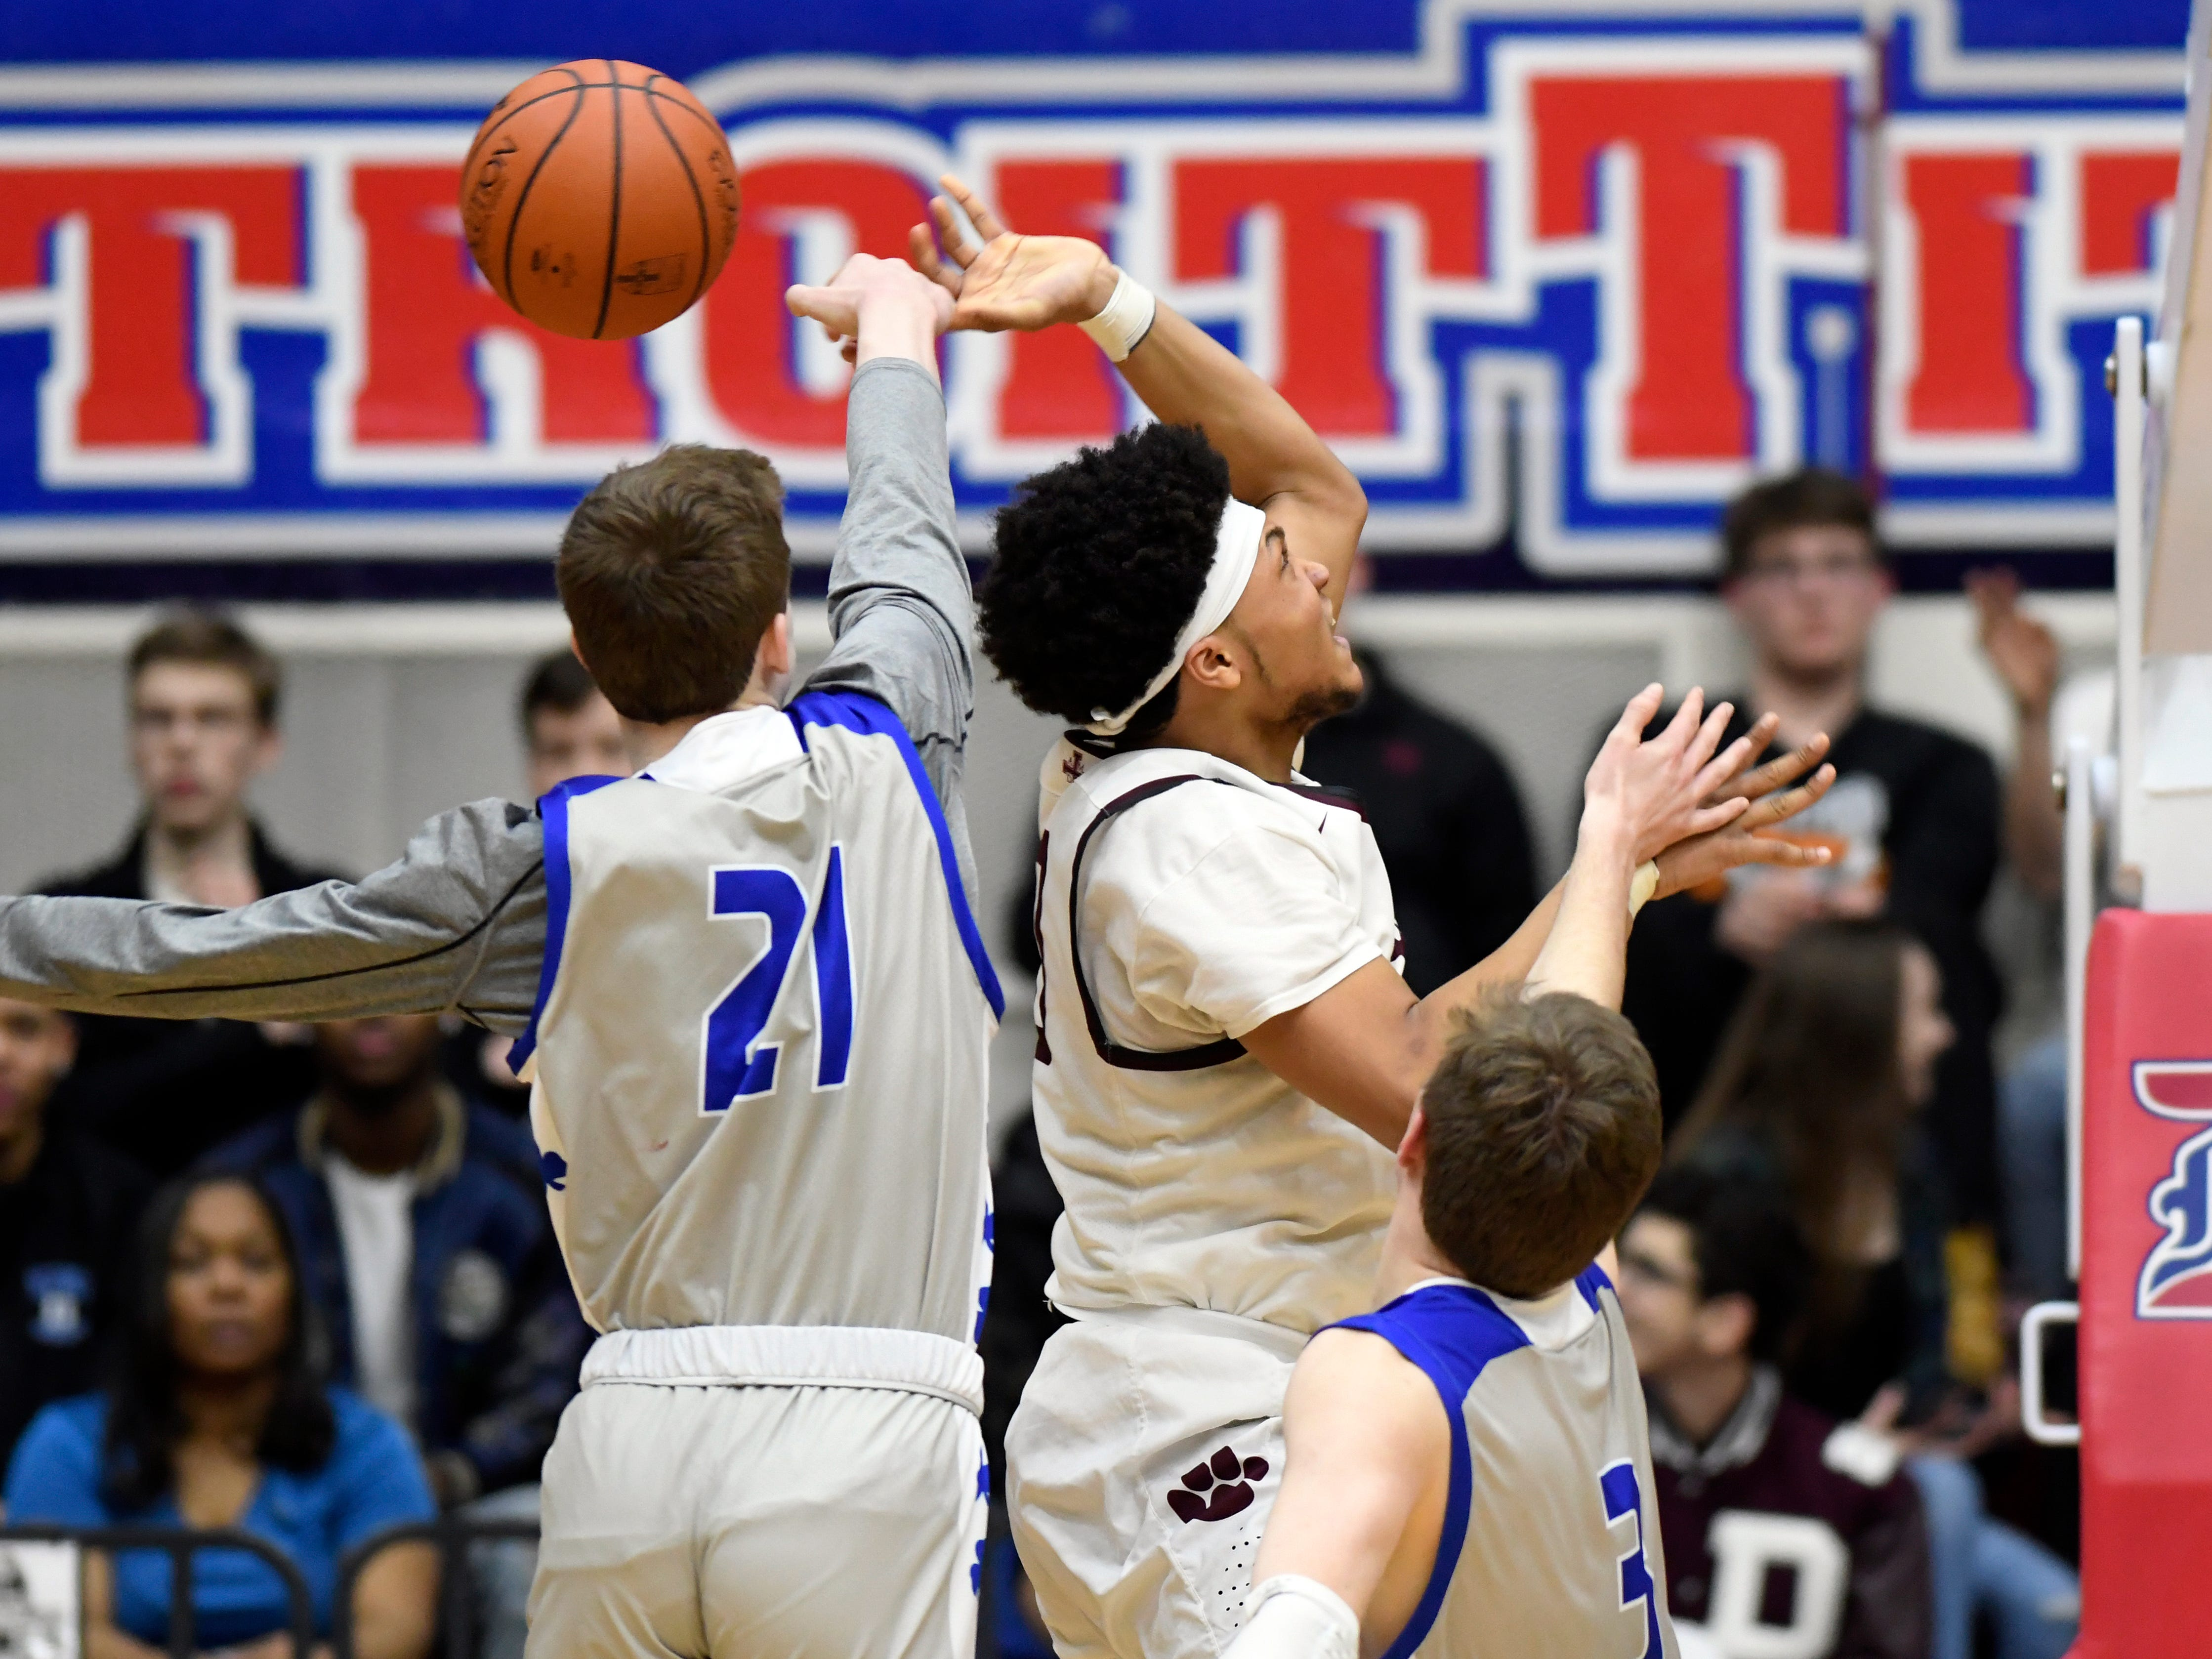 Detroit Catholic Central's Justin Rukat (21), left, knocks the ball away from U. of D Jesuit guard Daniel Friday (0) during the third quarter.